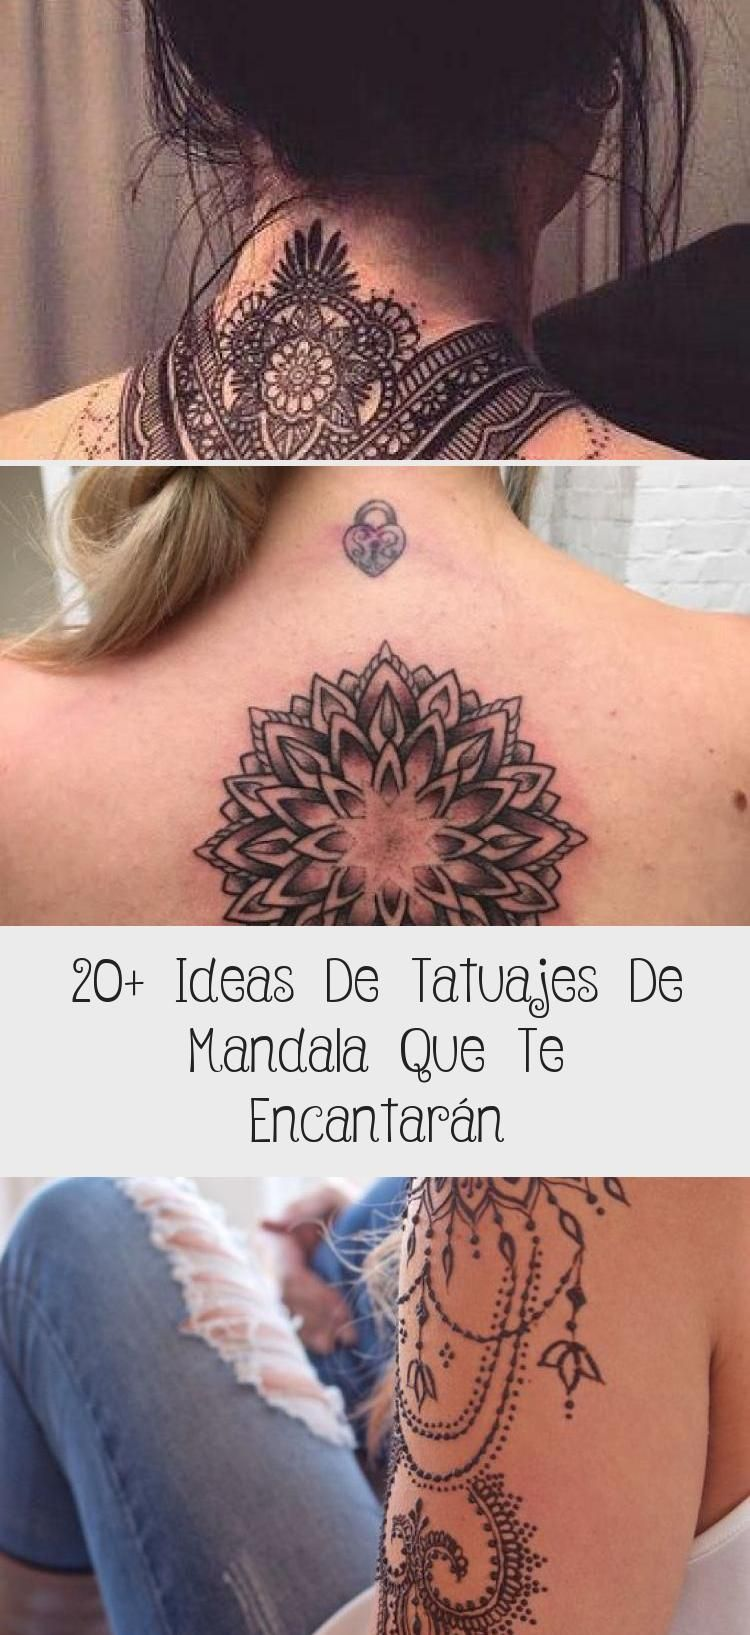 Photo of 20+ Mandala Tattoo Ideas You'll Love – Tattoo İdeas